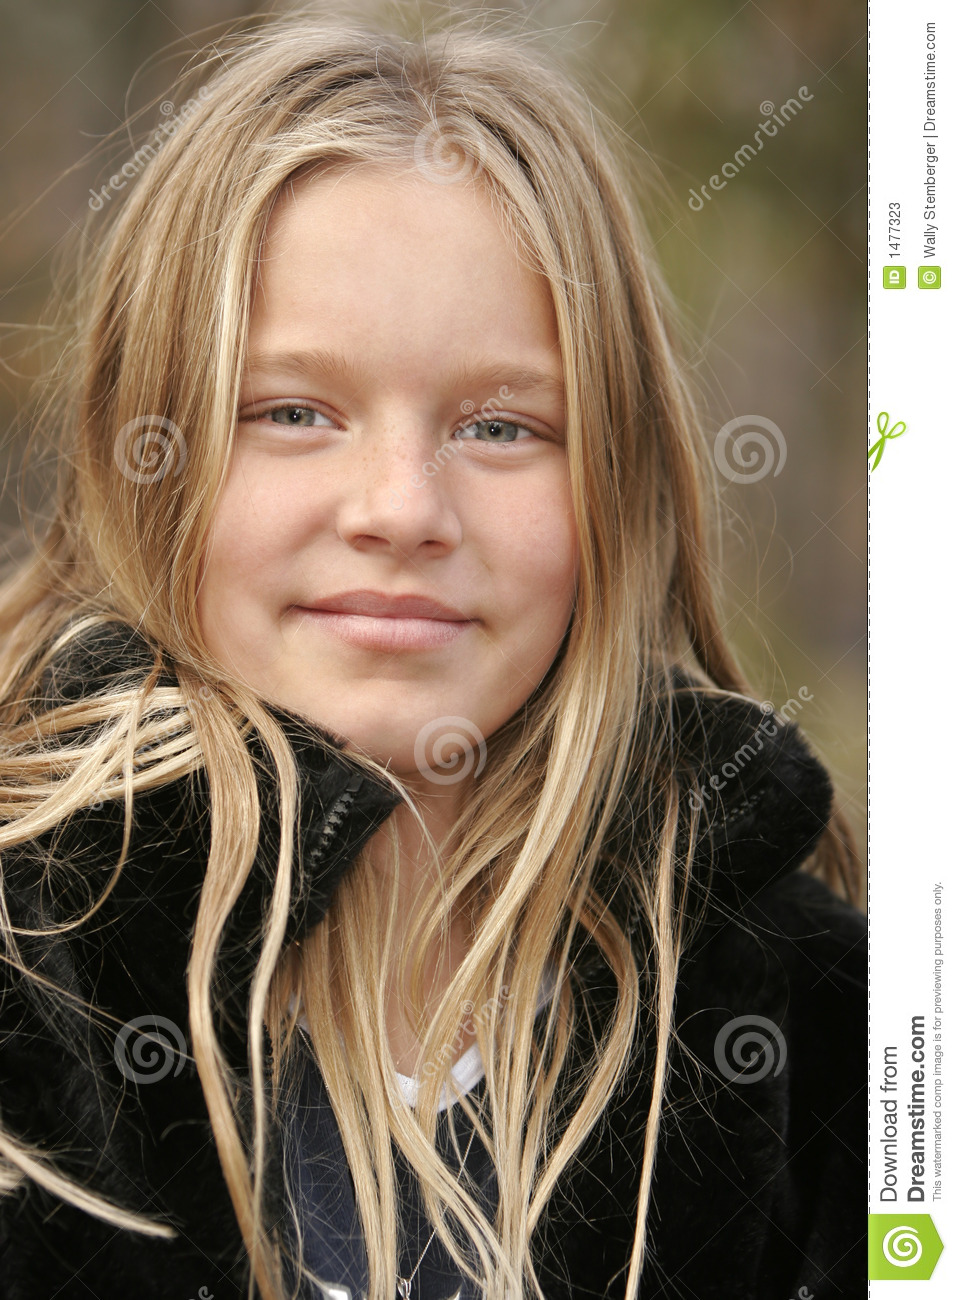 slordig vrouw blond